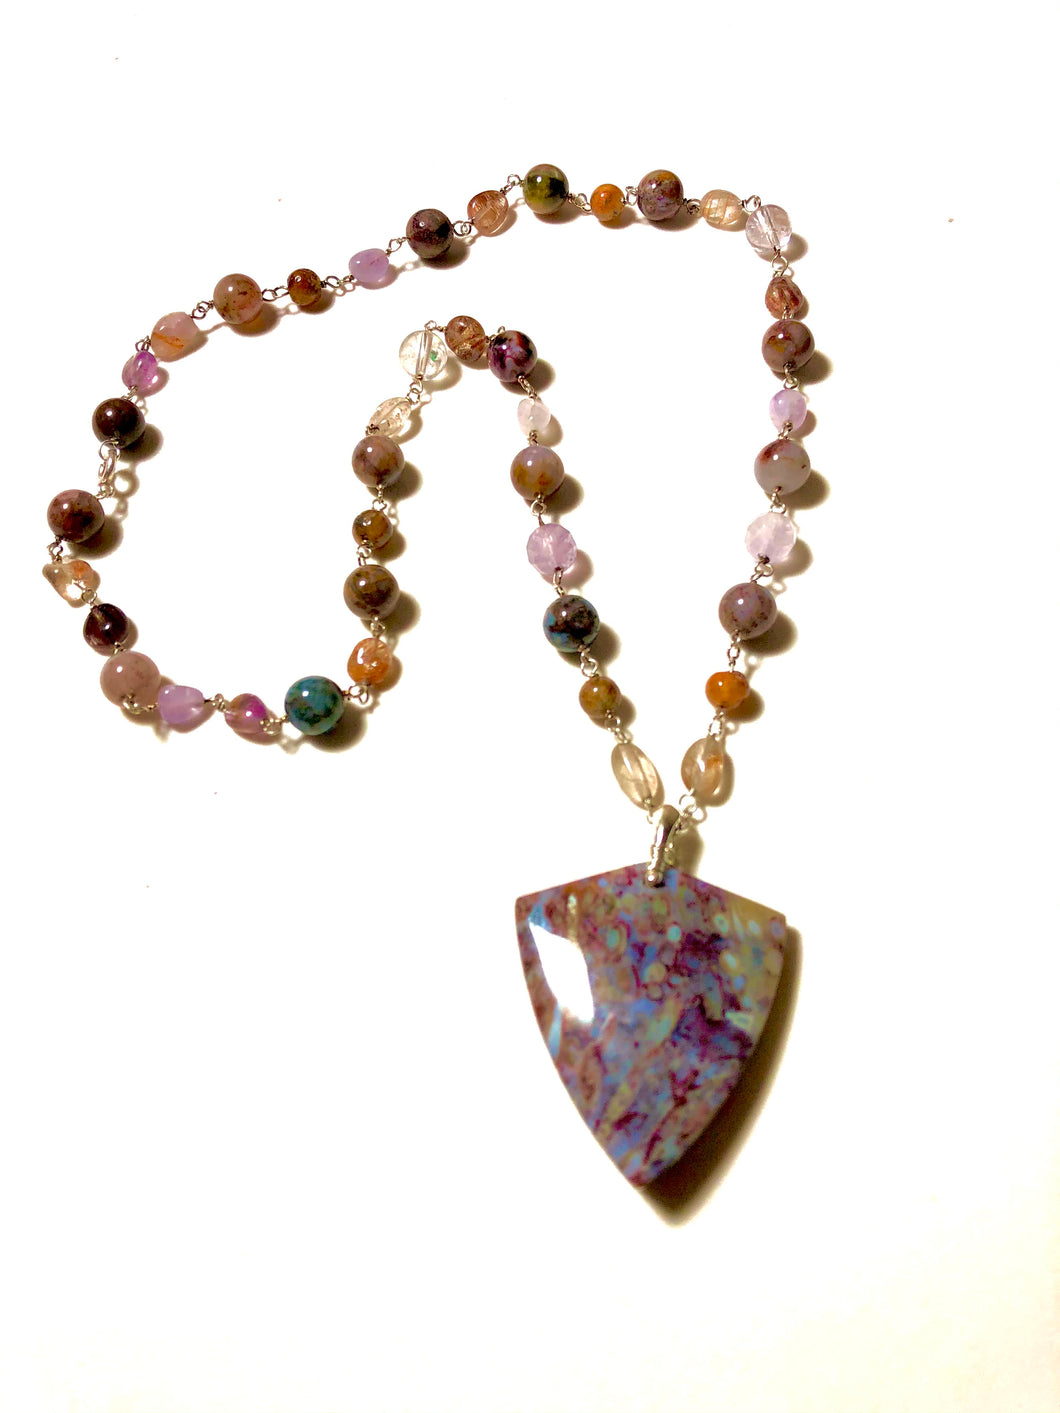 Necklace with red root Agate